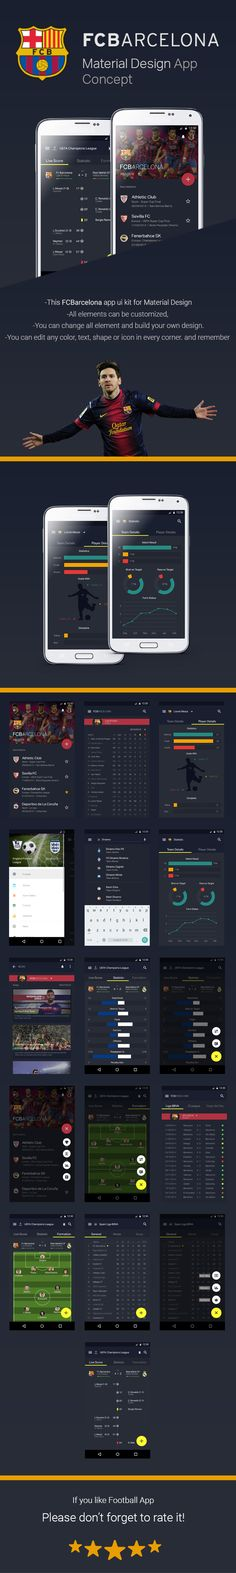 This football app ui kit for Material Design..I'd appreciate suggestions/feedback.You can download the PSD here:http://goo.gl/8526b0